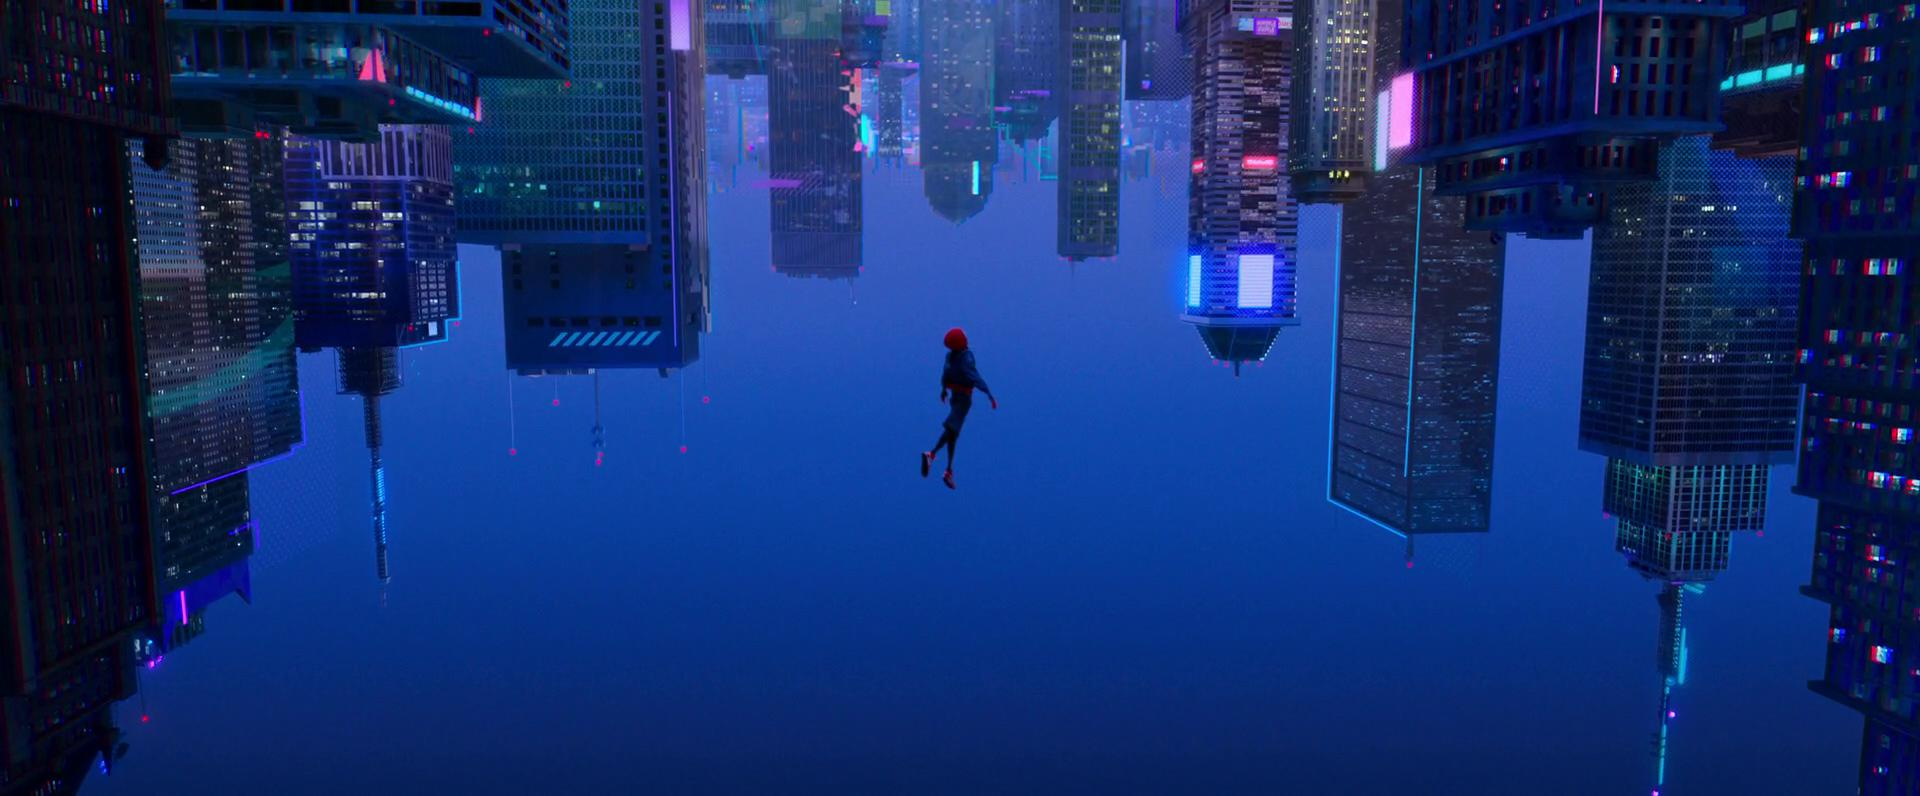 Spider Man Into The Spider Verse Wallpaper 1920x1080 Posted By